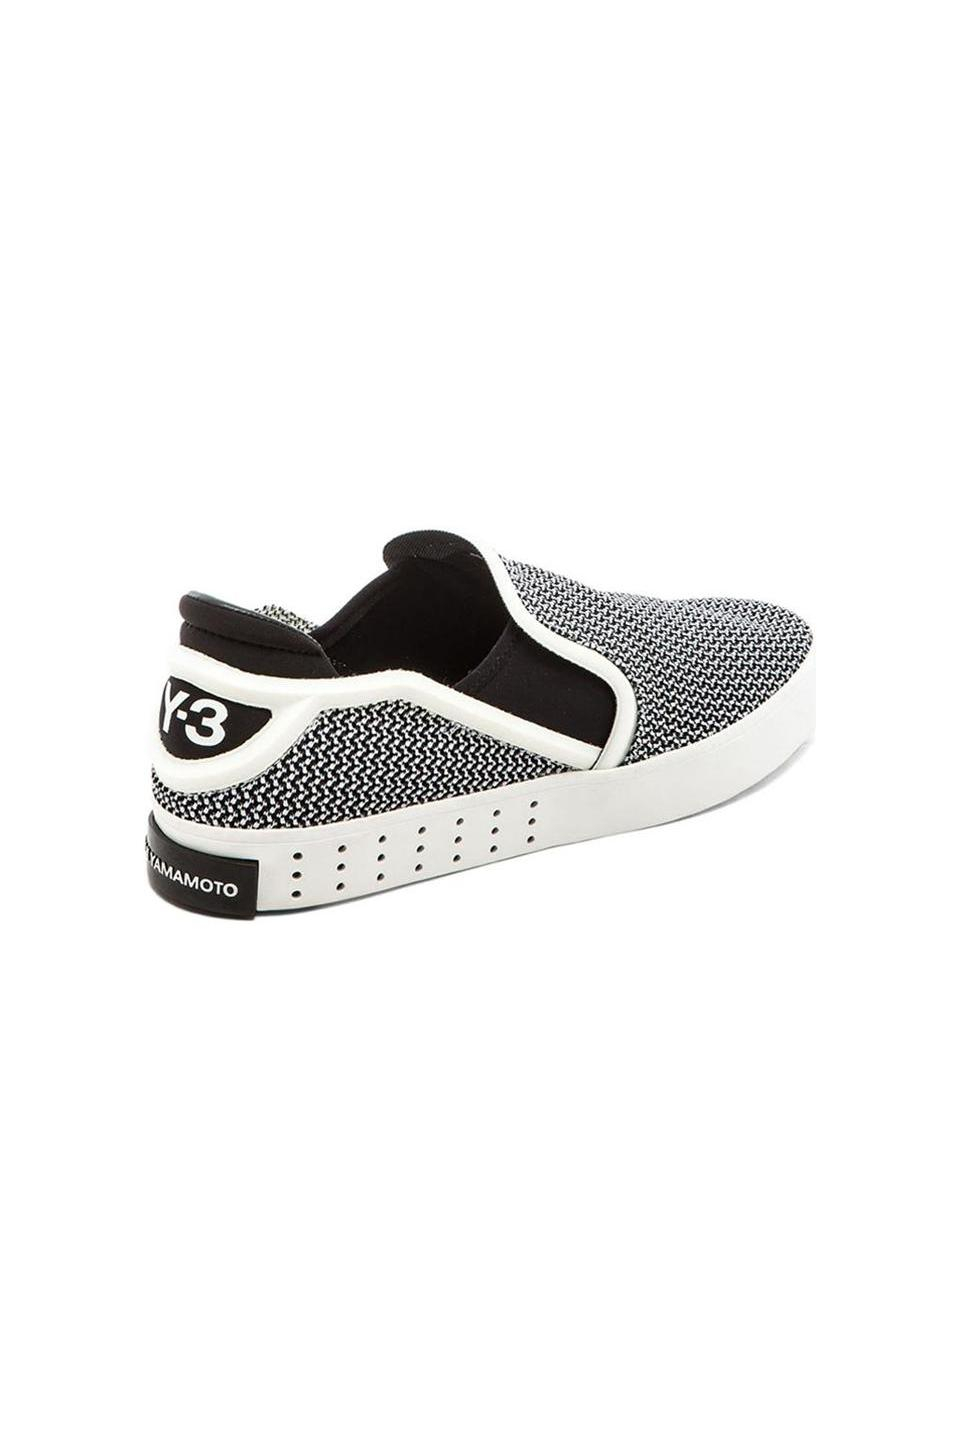 bc3374431afc6 adidas y3 laver slip on white sneakers uk